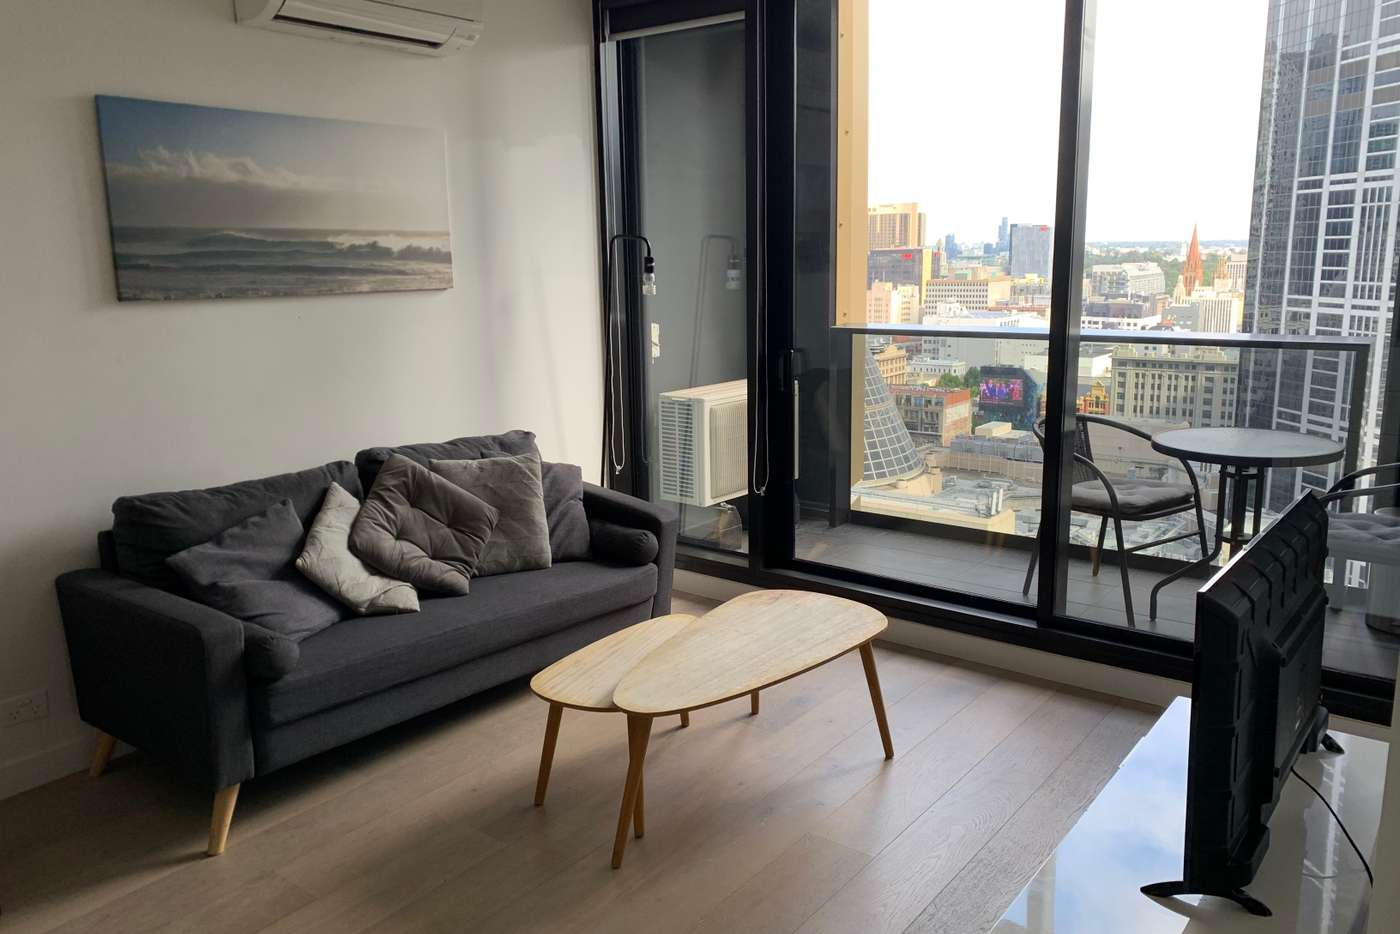 Main view of Homely apartment listing, 2105/81 A'beckett Street, Melbourne VIC 3000